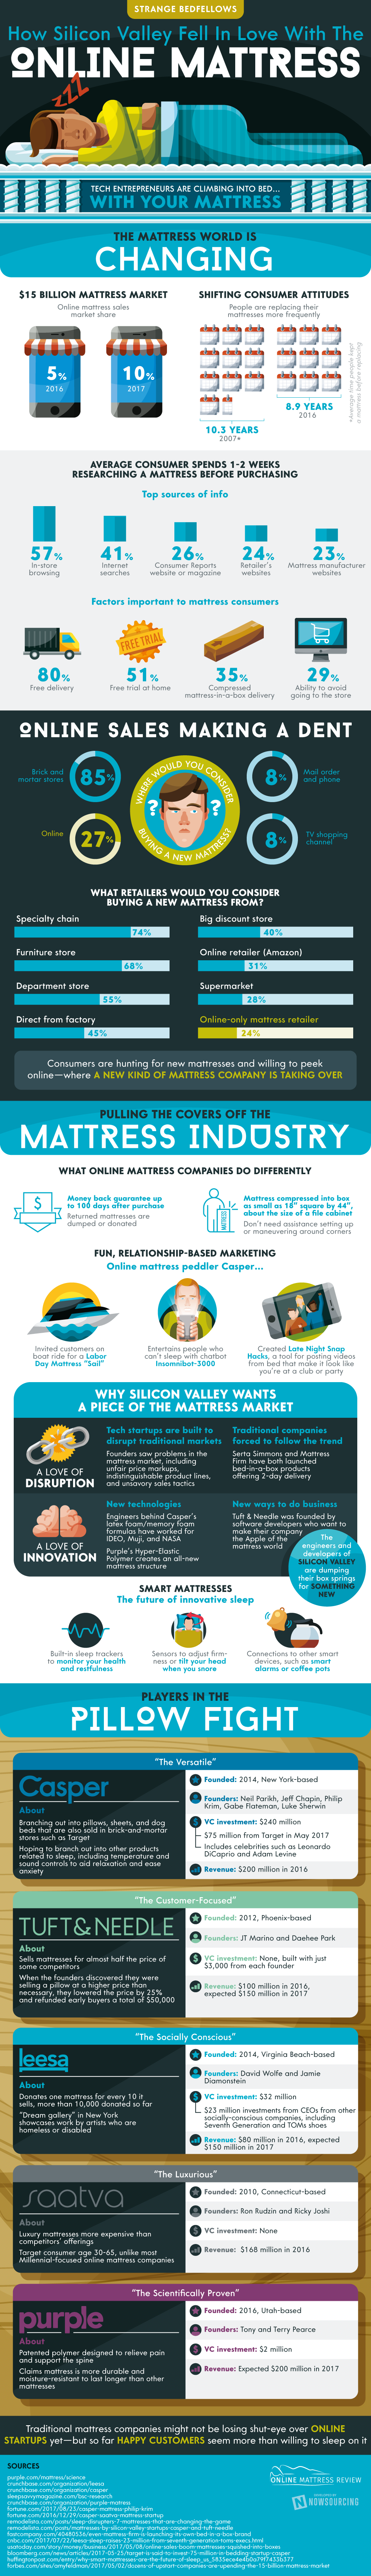 Silicon Valley online mattress